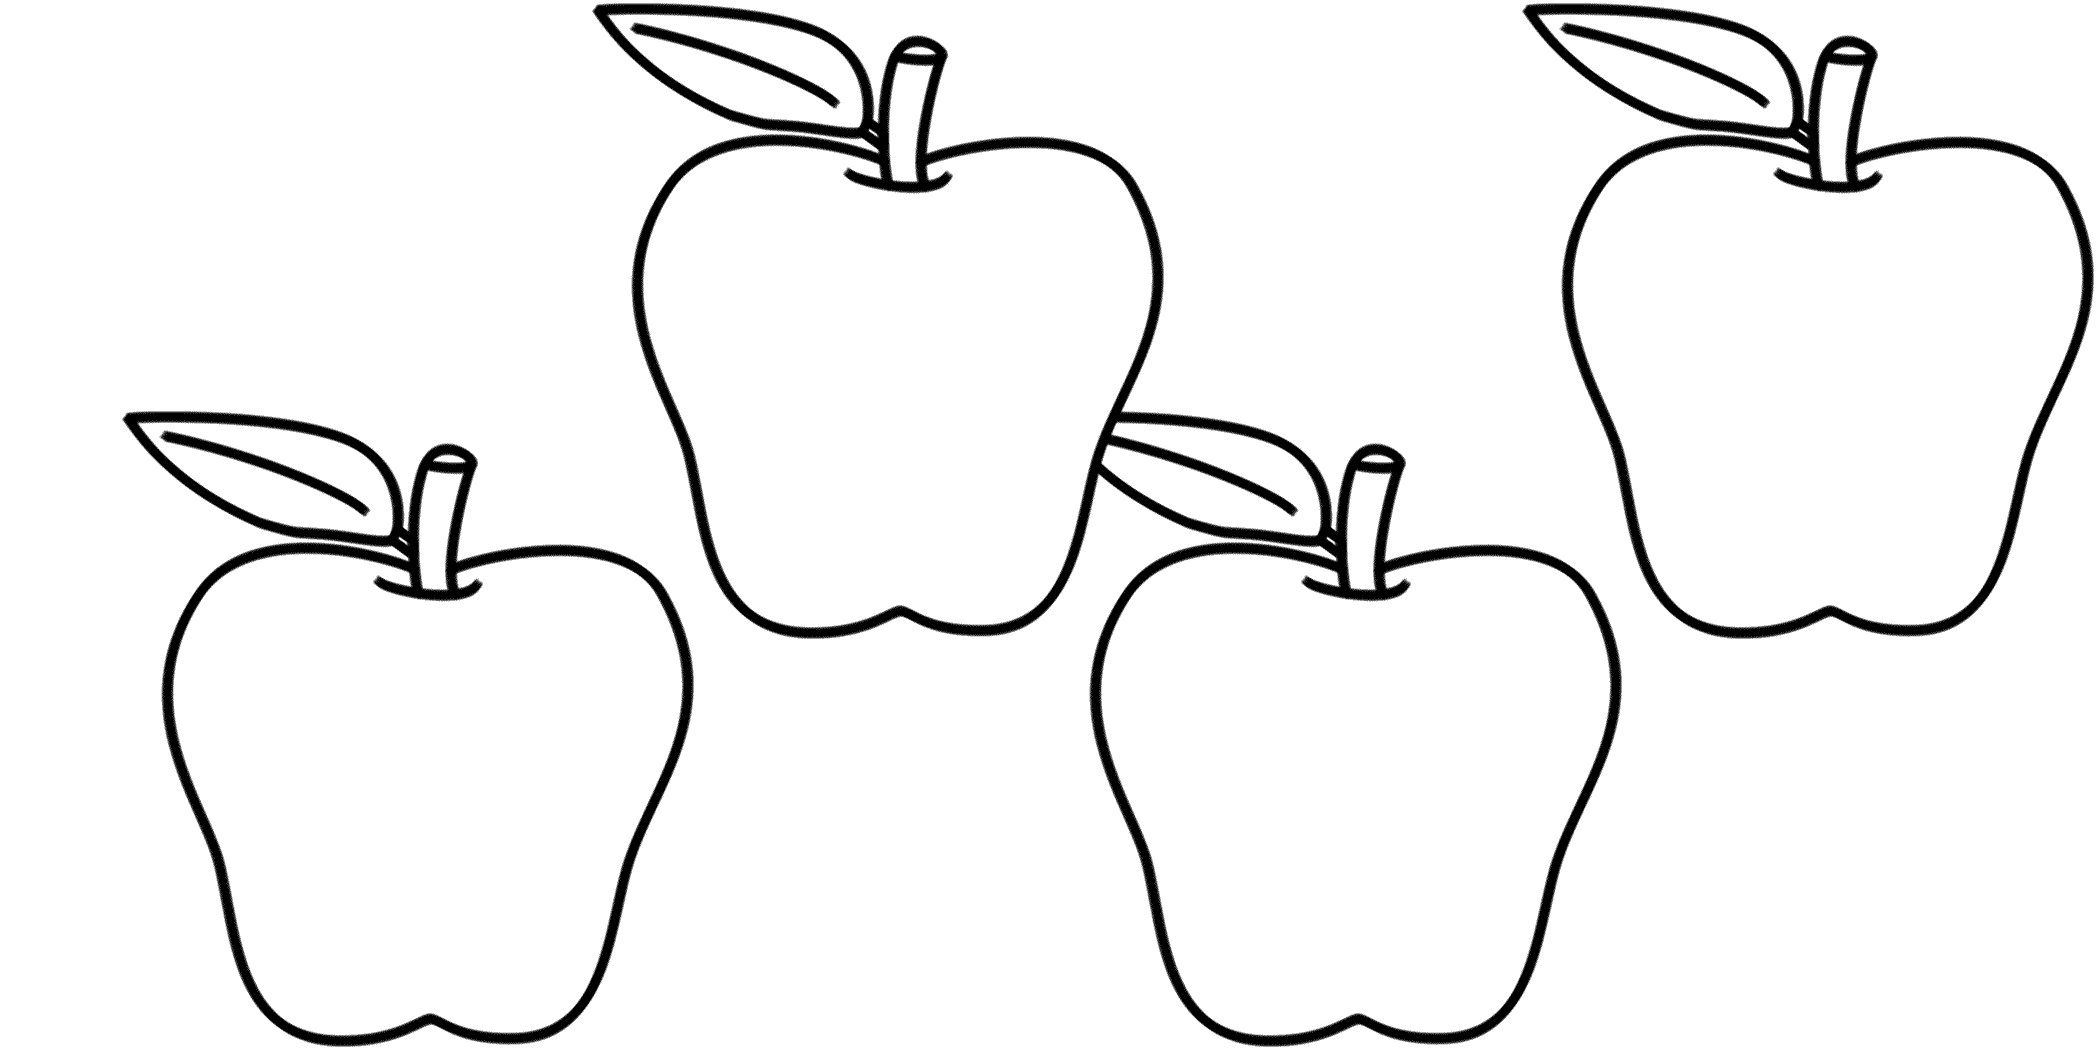 In Clipart Of Apple Black And White Nail Clip Artclipart Four Apples.